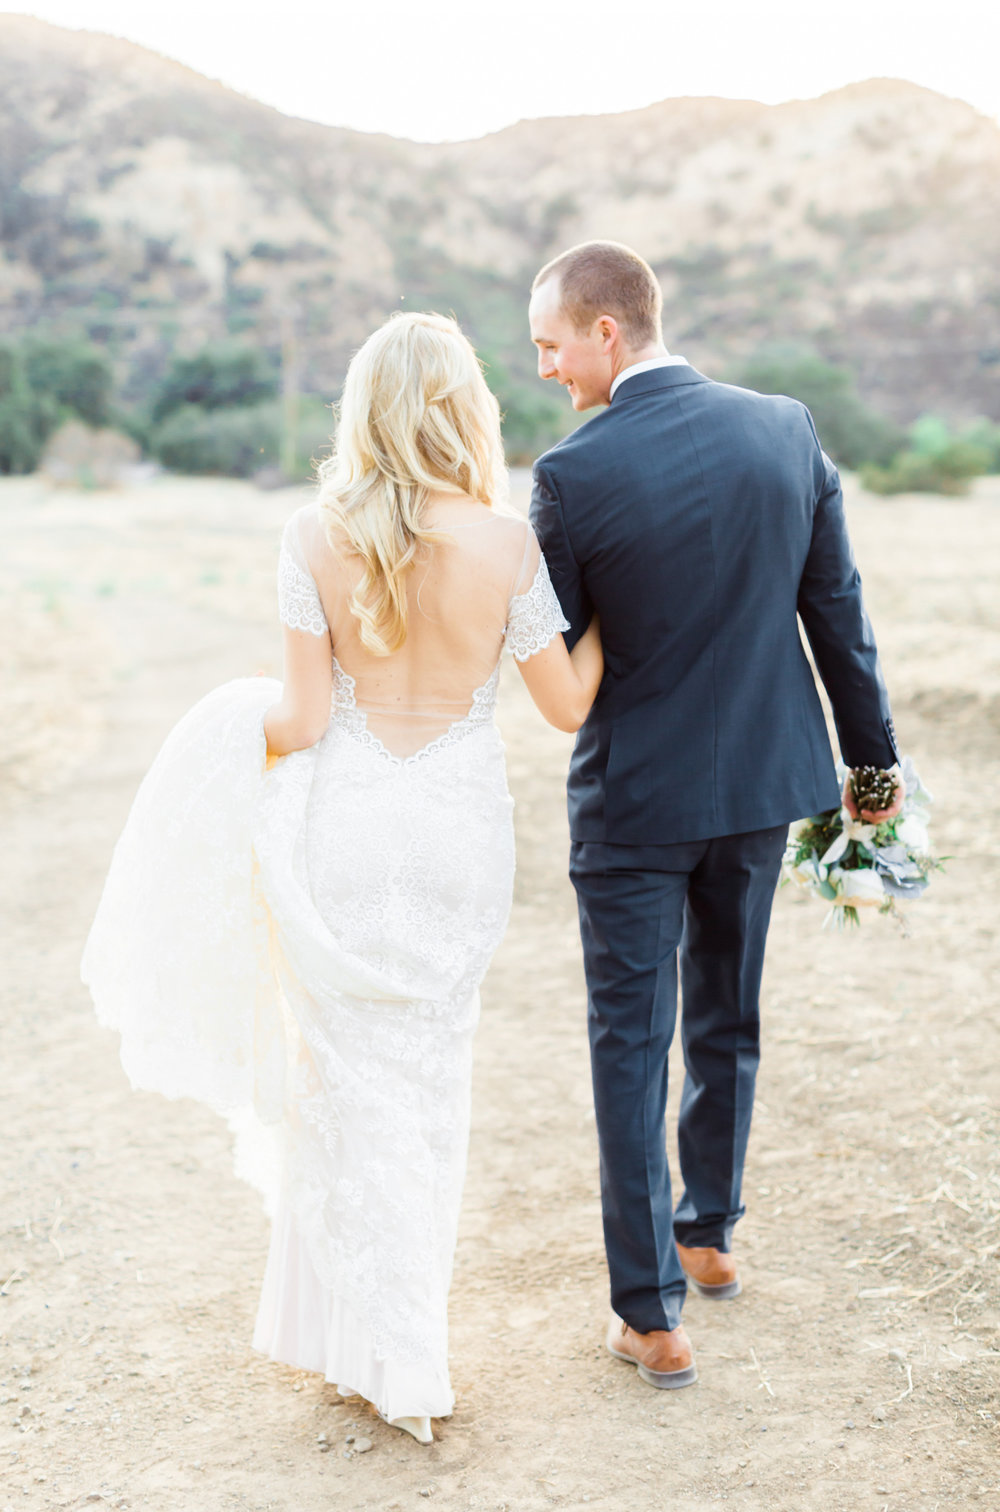 California-Wedding-Photographer-Style-Me-Pretty-Natalie-Schutt-San-Luis-Obispo_08.jpg